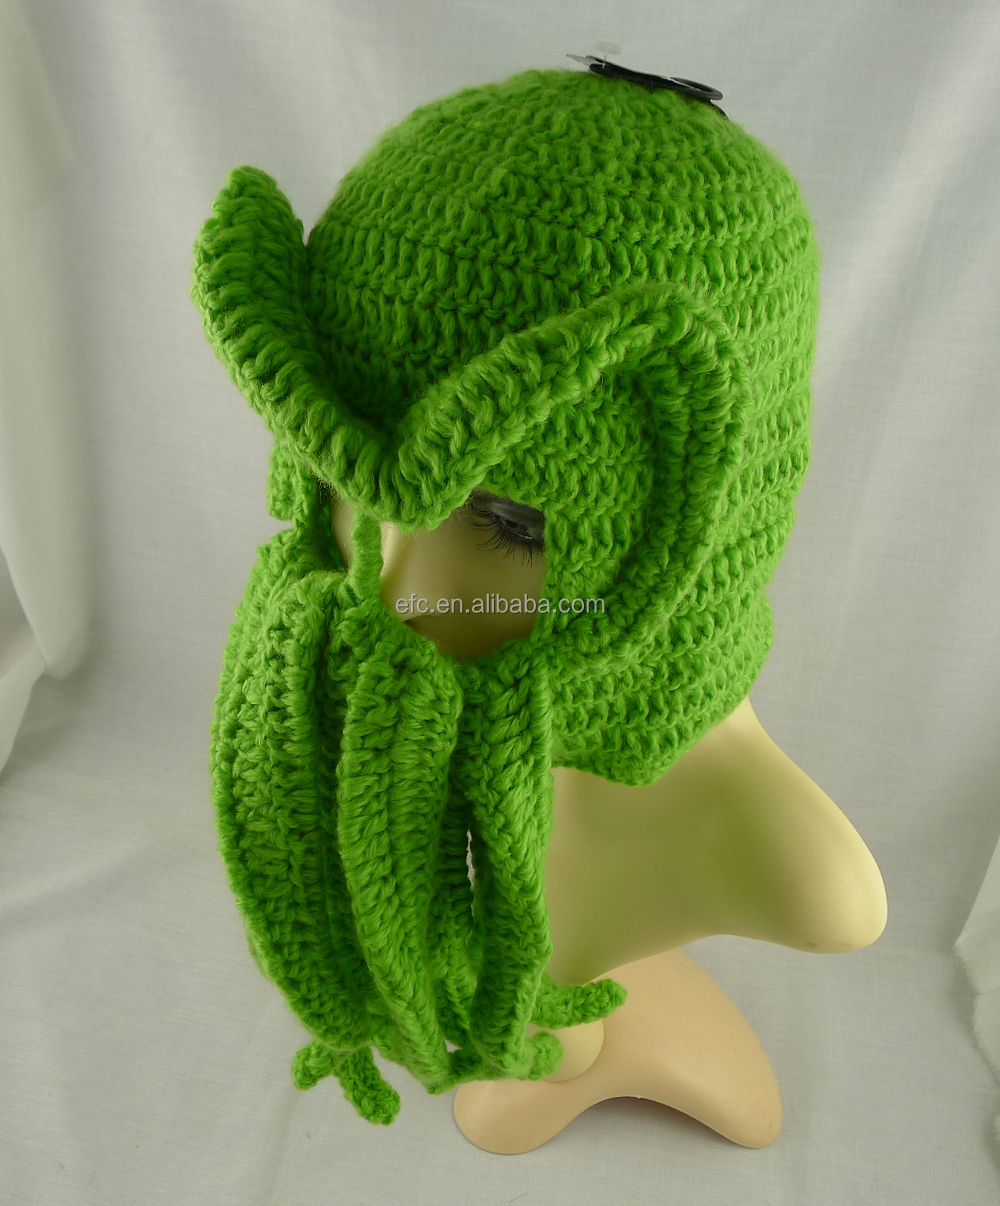 Hot sell hand knitted crochet cthulhu ski mask ski hat with hot sell hand knitted crochet cthulhu ski mask ski hat with tentacles crochet octopus hat bankloansurffo Choice Image